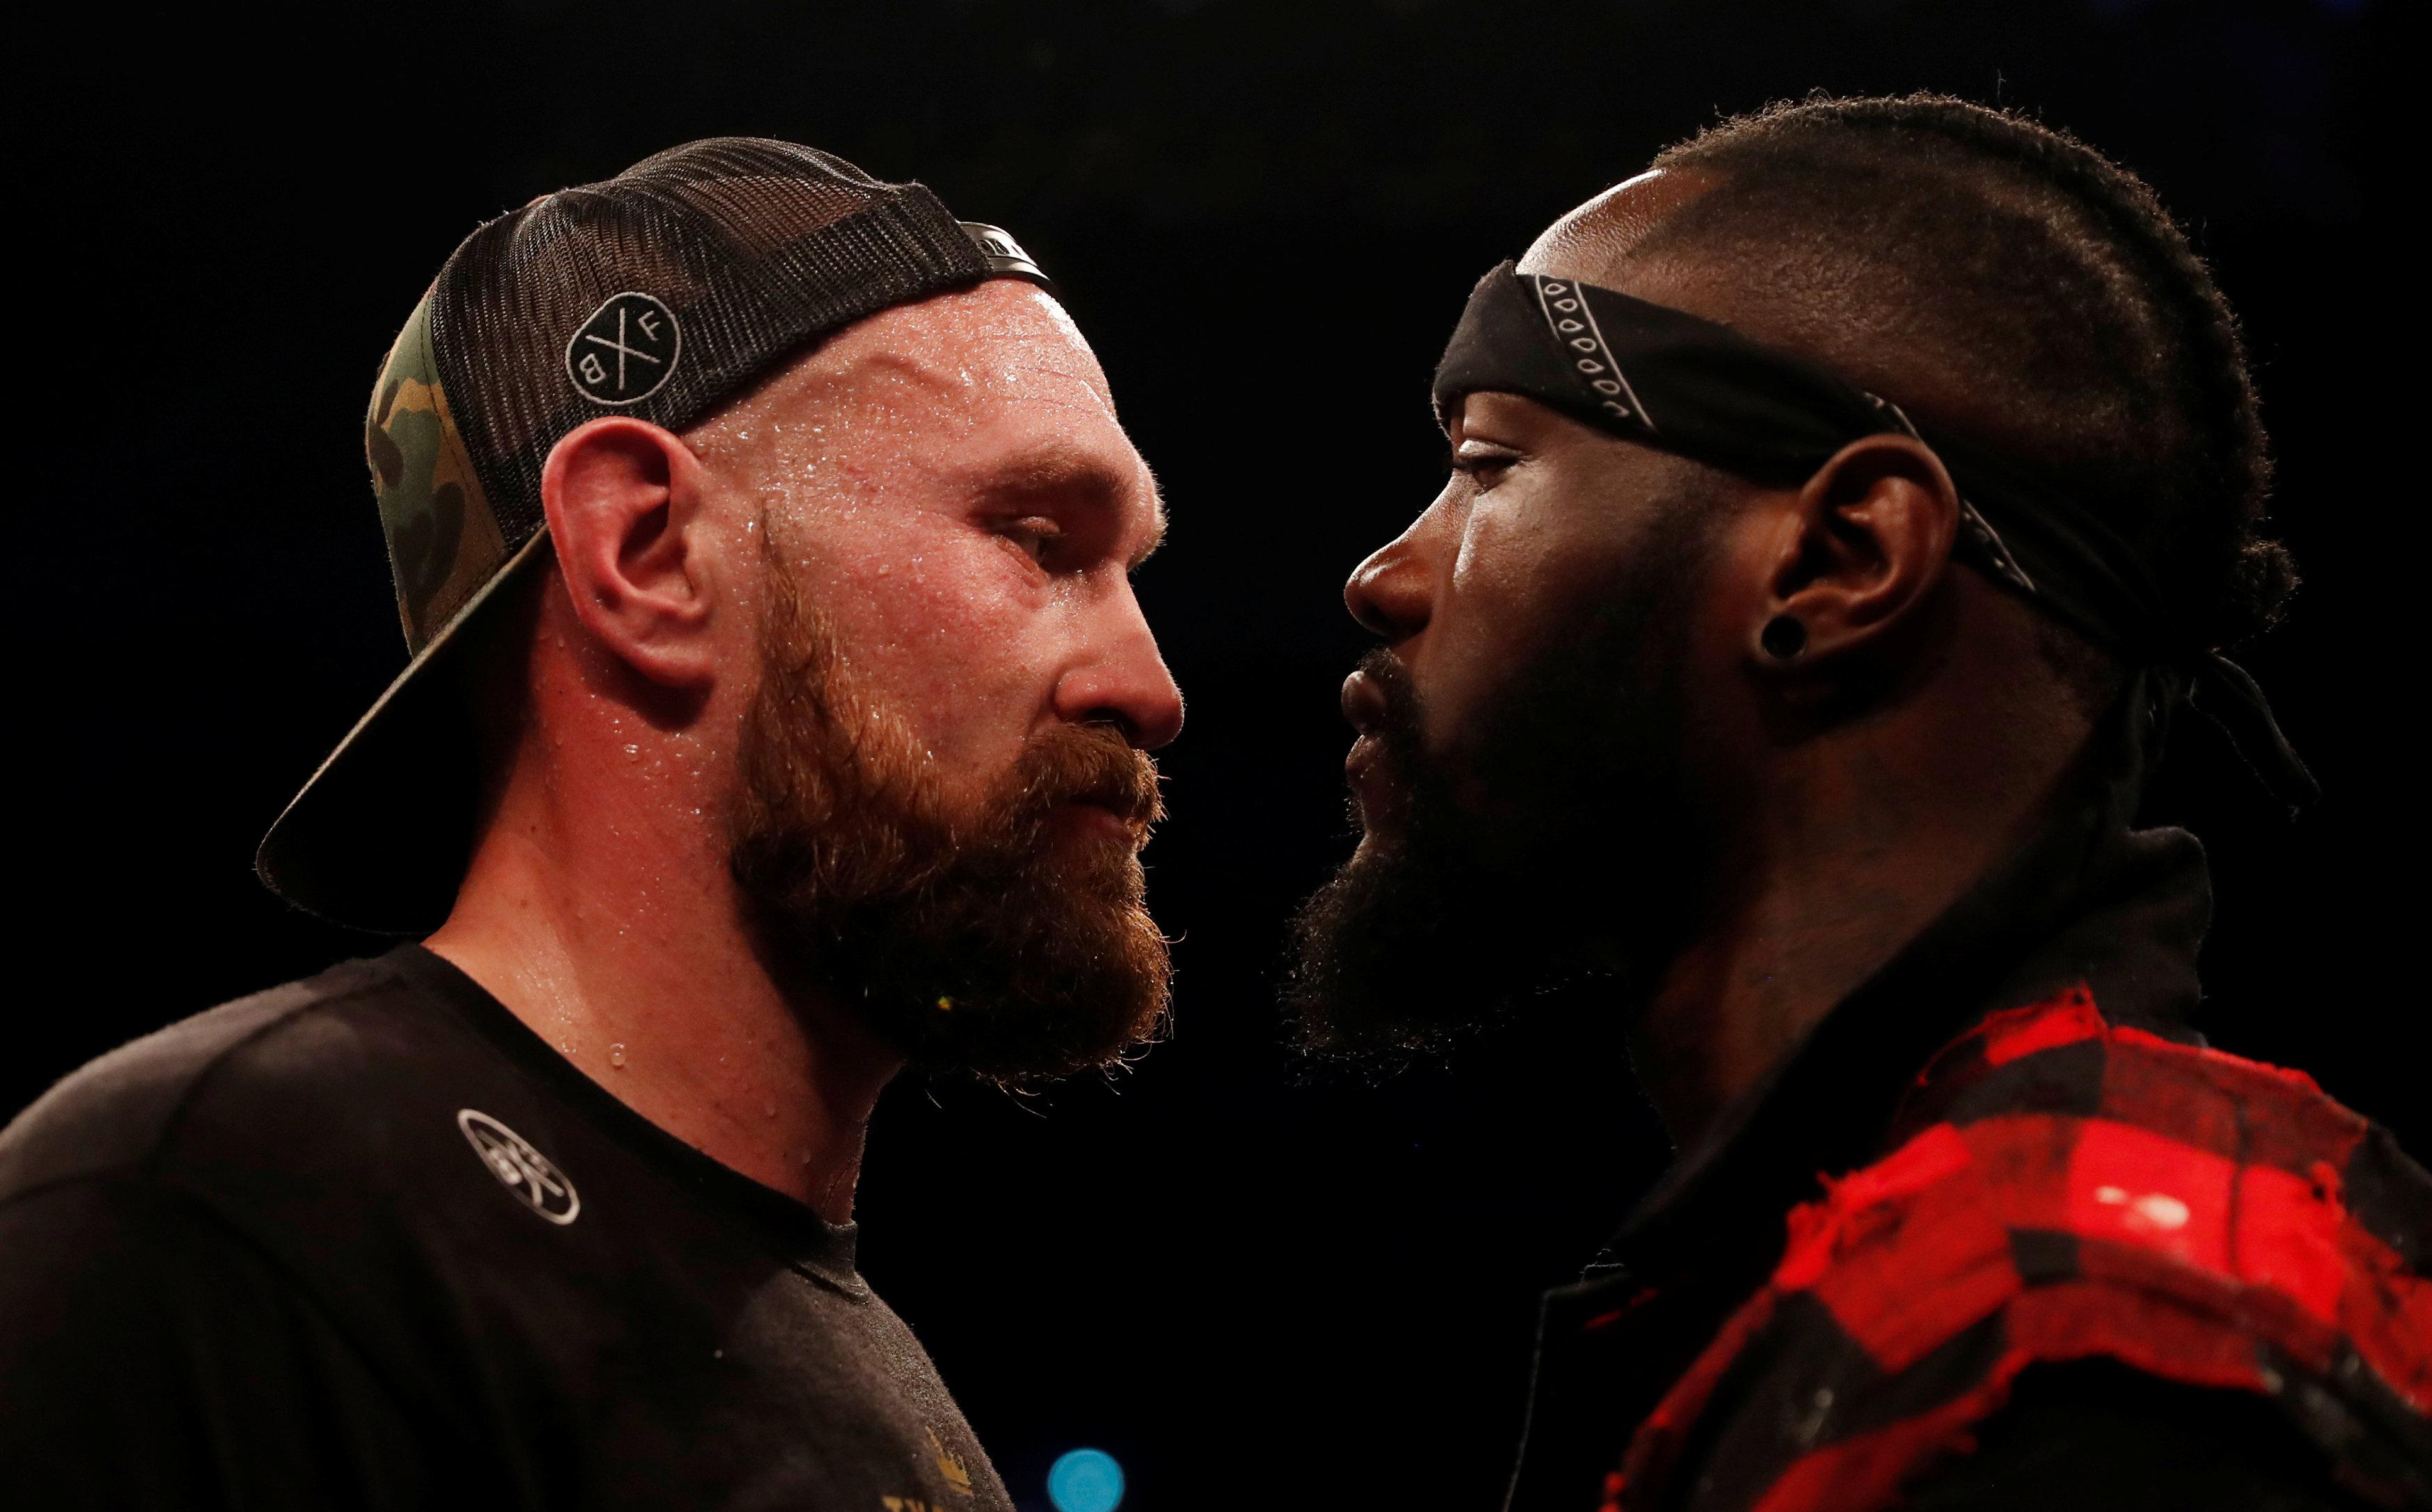 Tyson Fury and Deontay Wilder will go head-to-head in December